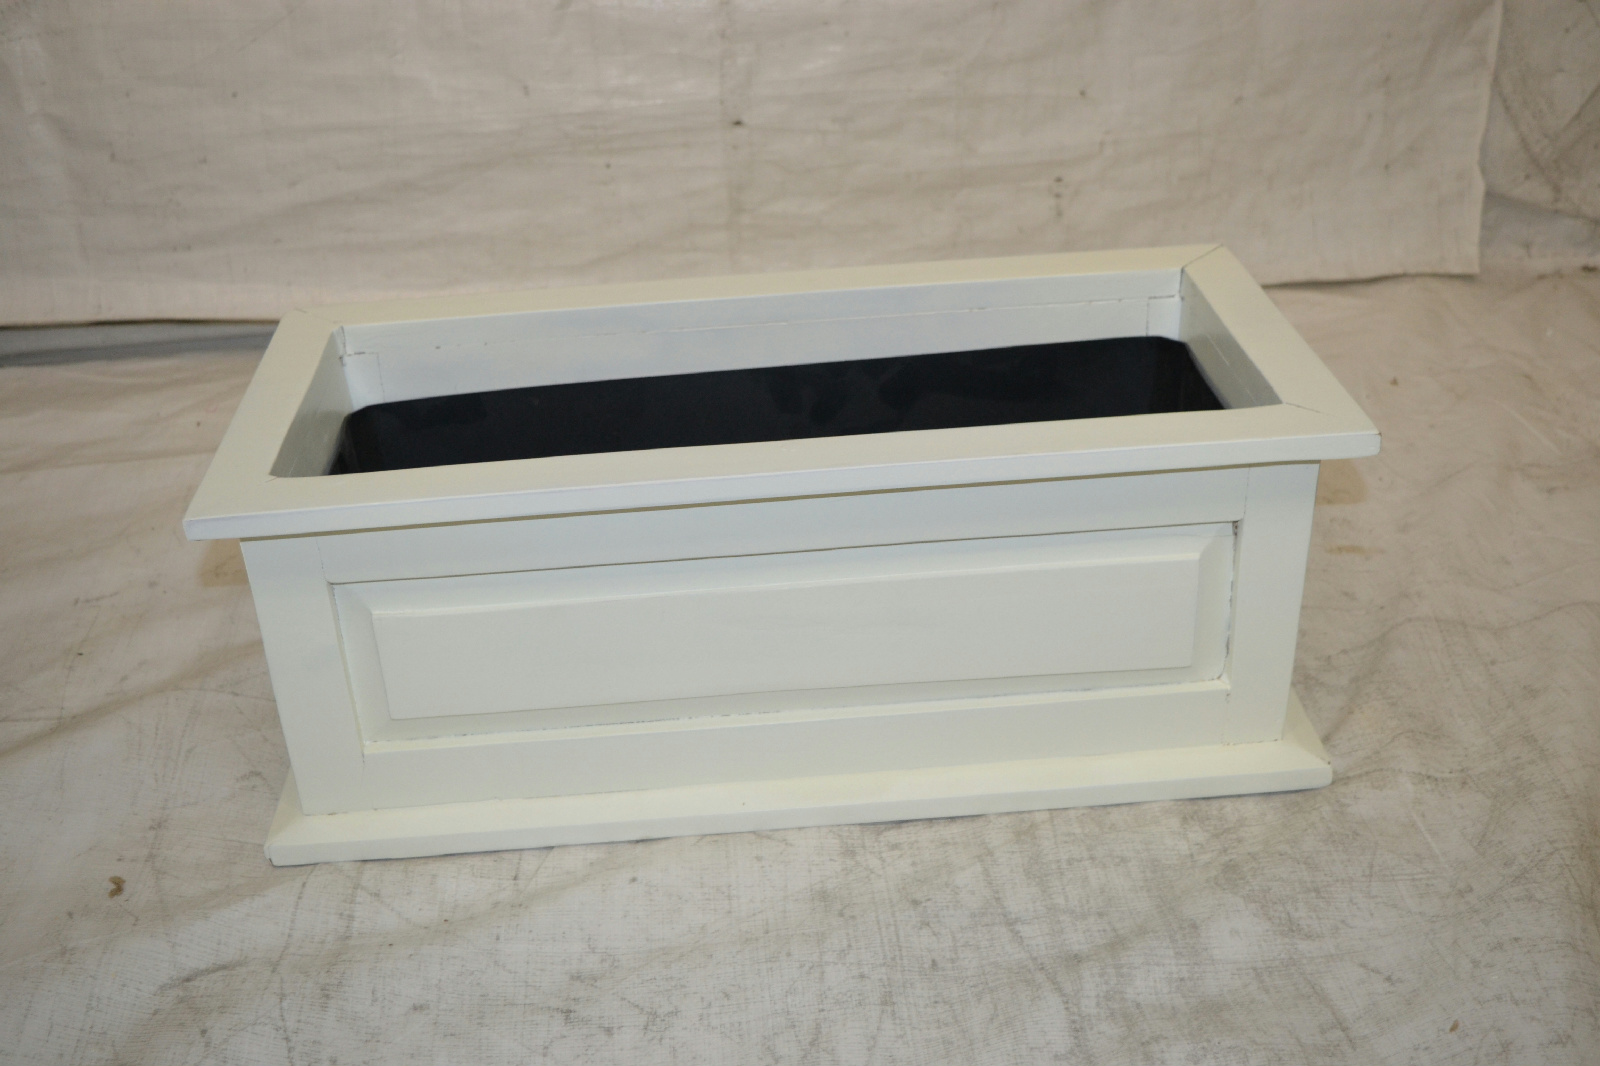 dmc products savannah 24 inch solid wood window box white ebay. Black Bedroom Furniture Sets. Home Design Ideas